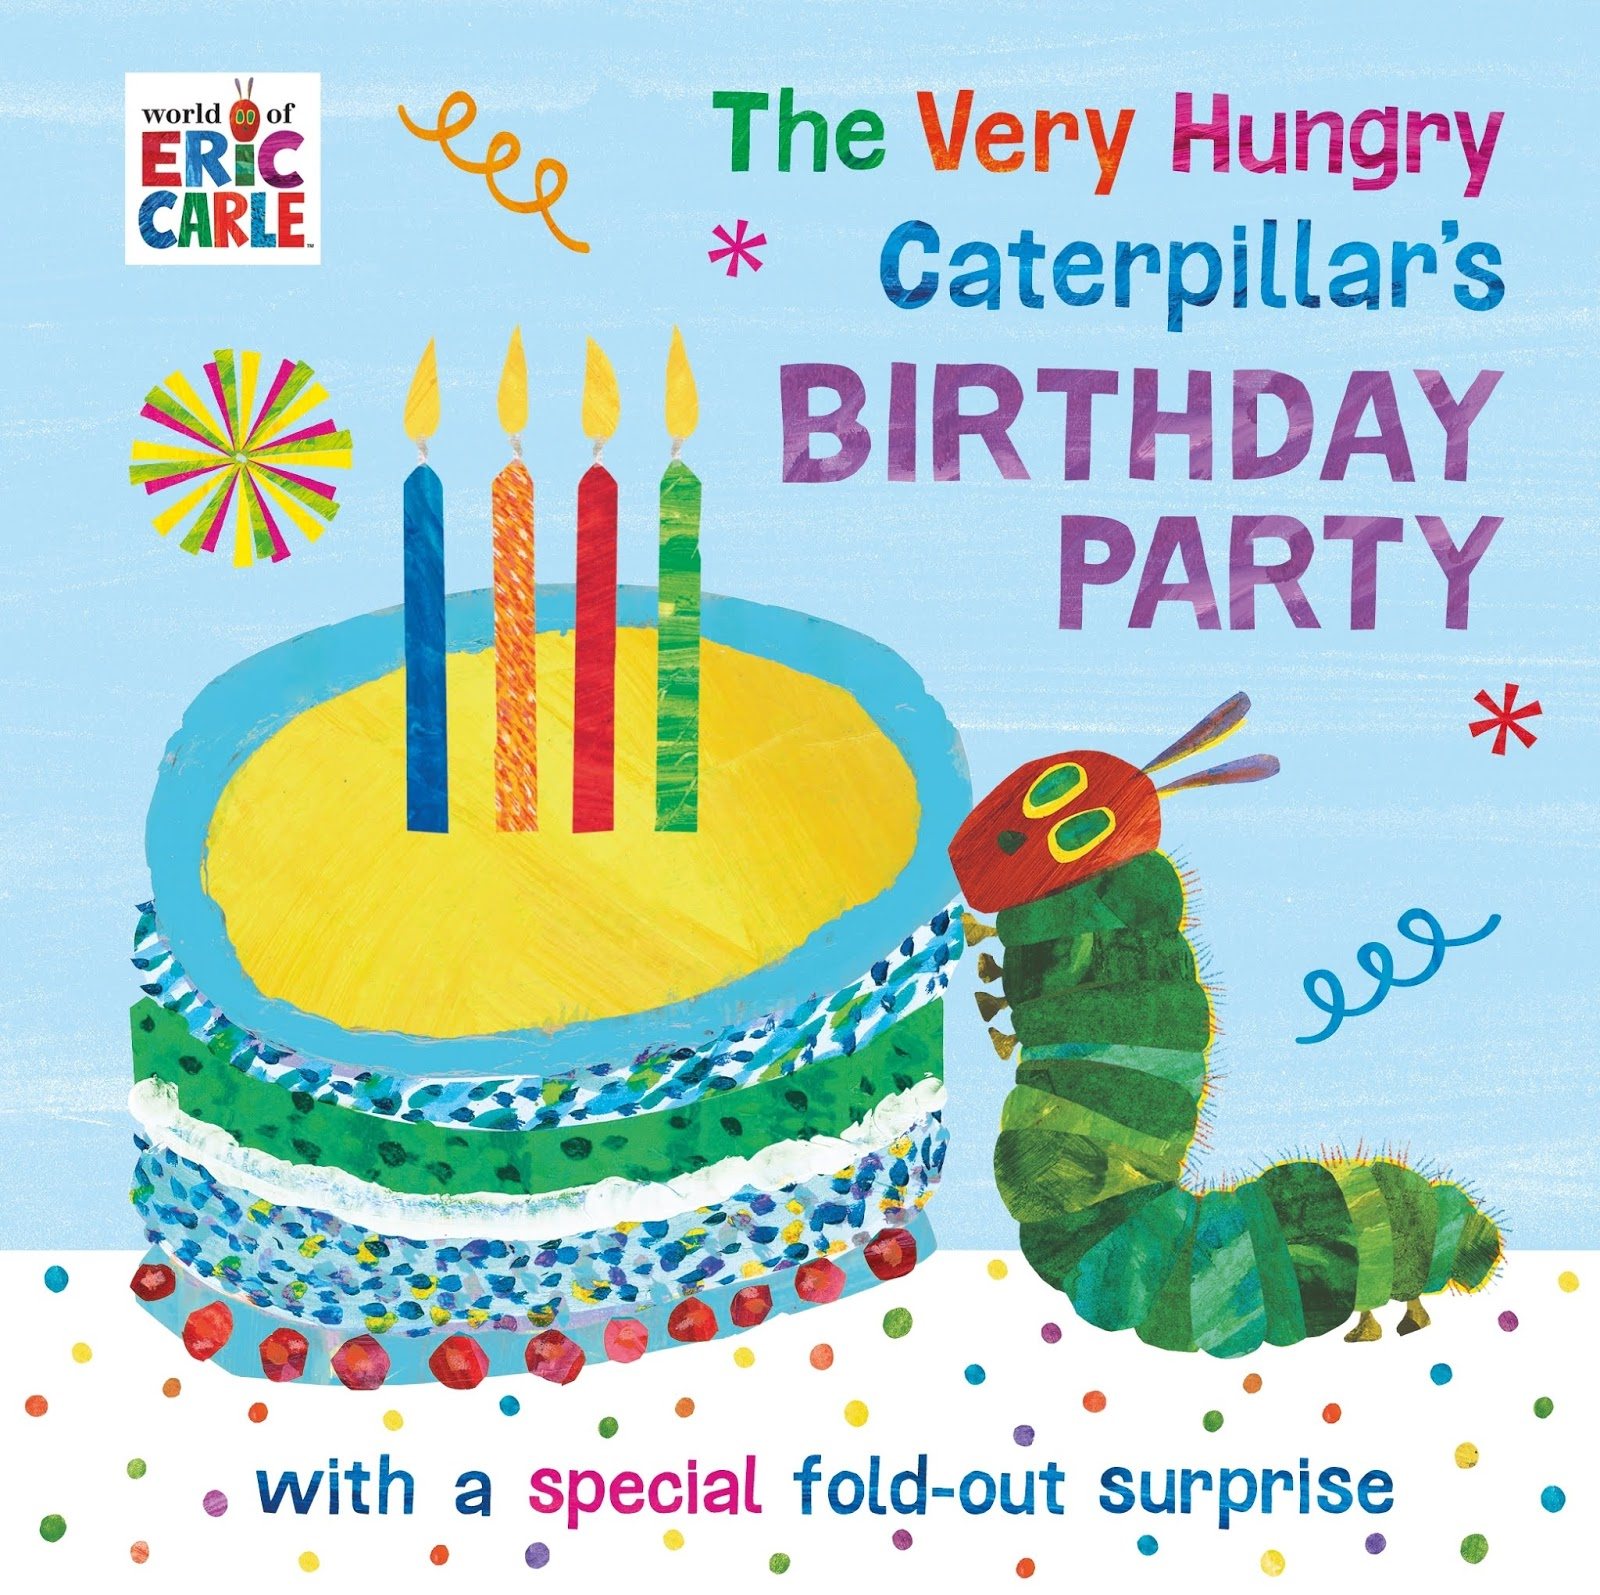 Kids' Book Review: Review: The Very Hungry Caterpillar's